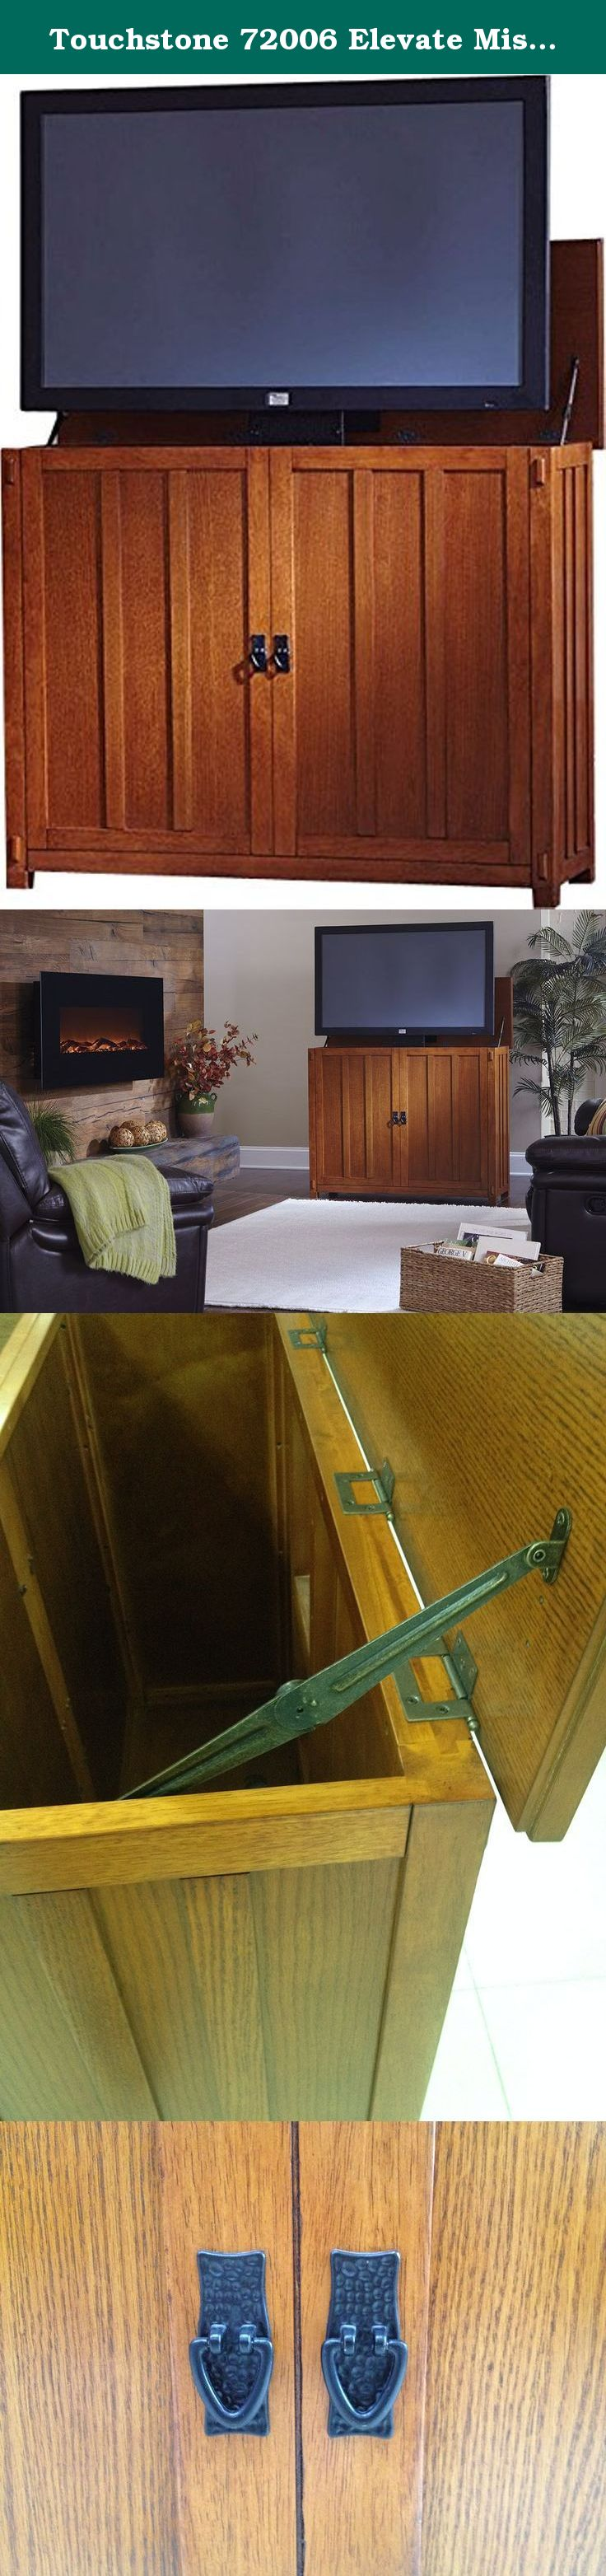 Touchstone Elevate Mission TV Lift Cabinet For TVs Up To 42